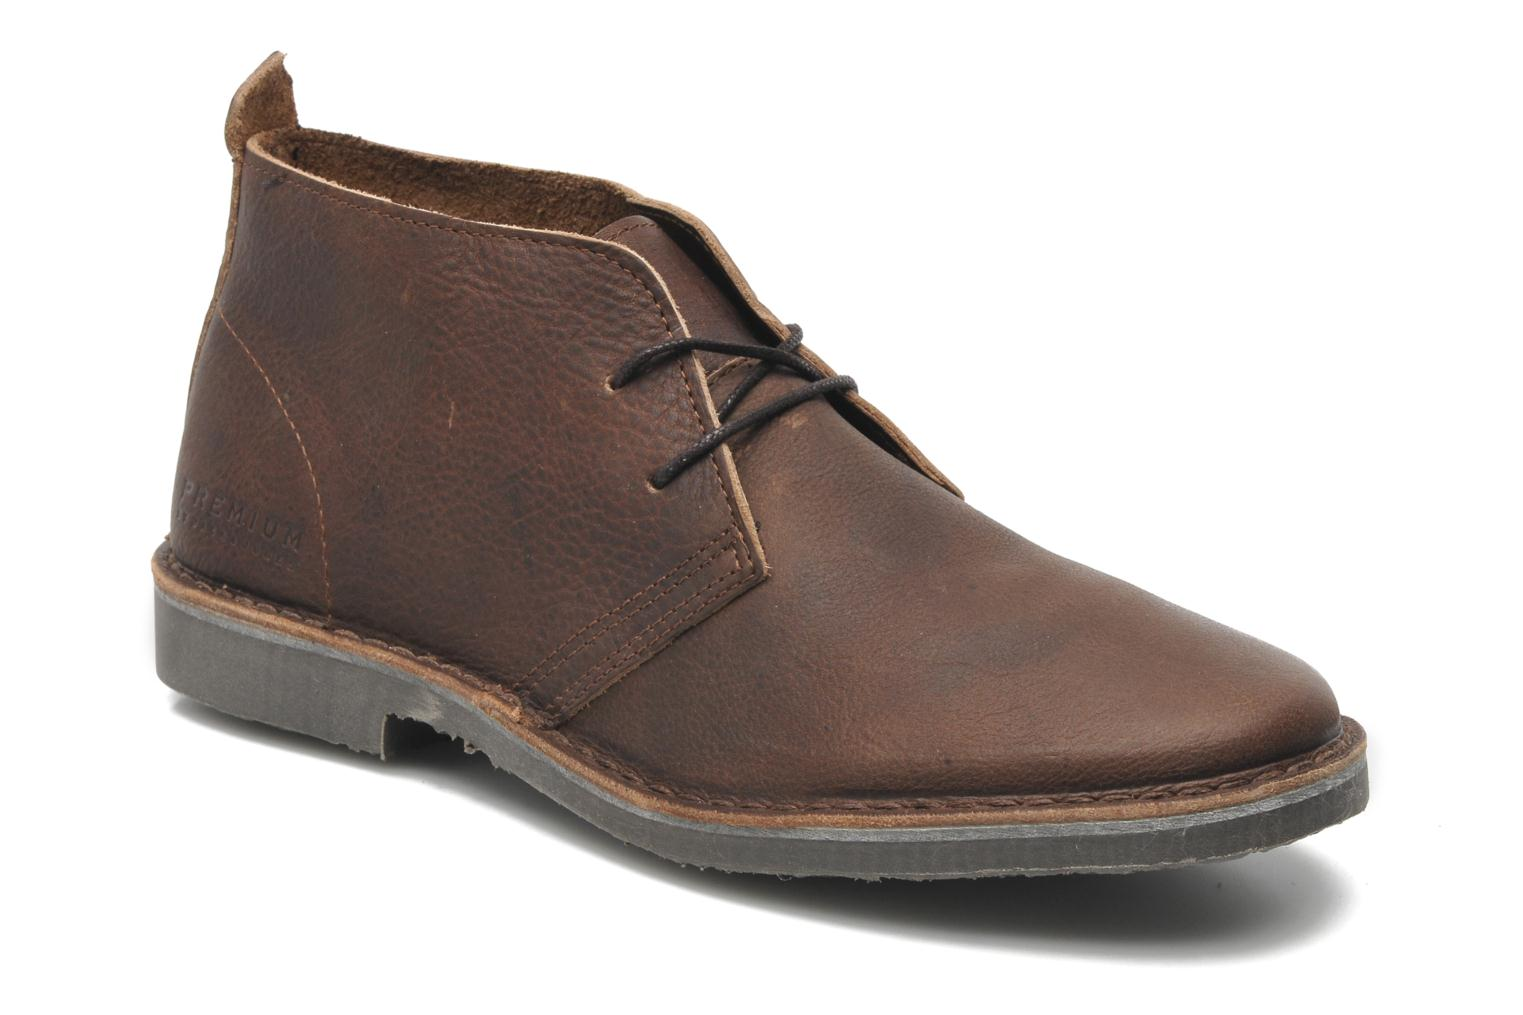 Chaussures à lacets Jack & Jones JJ Gobi Heavy Leather Desert Boot Prm Marron vue détail/paire